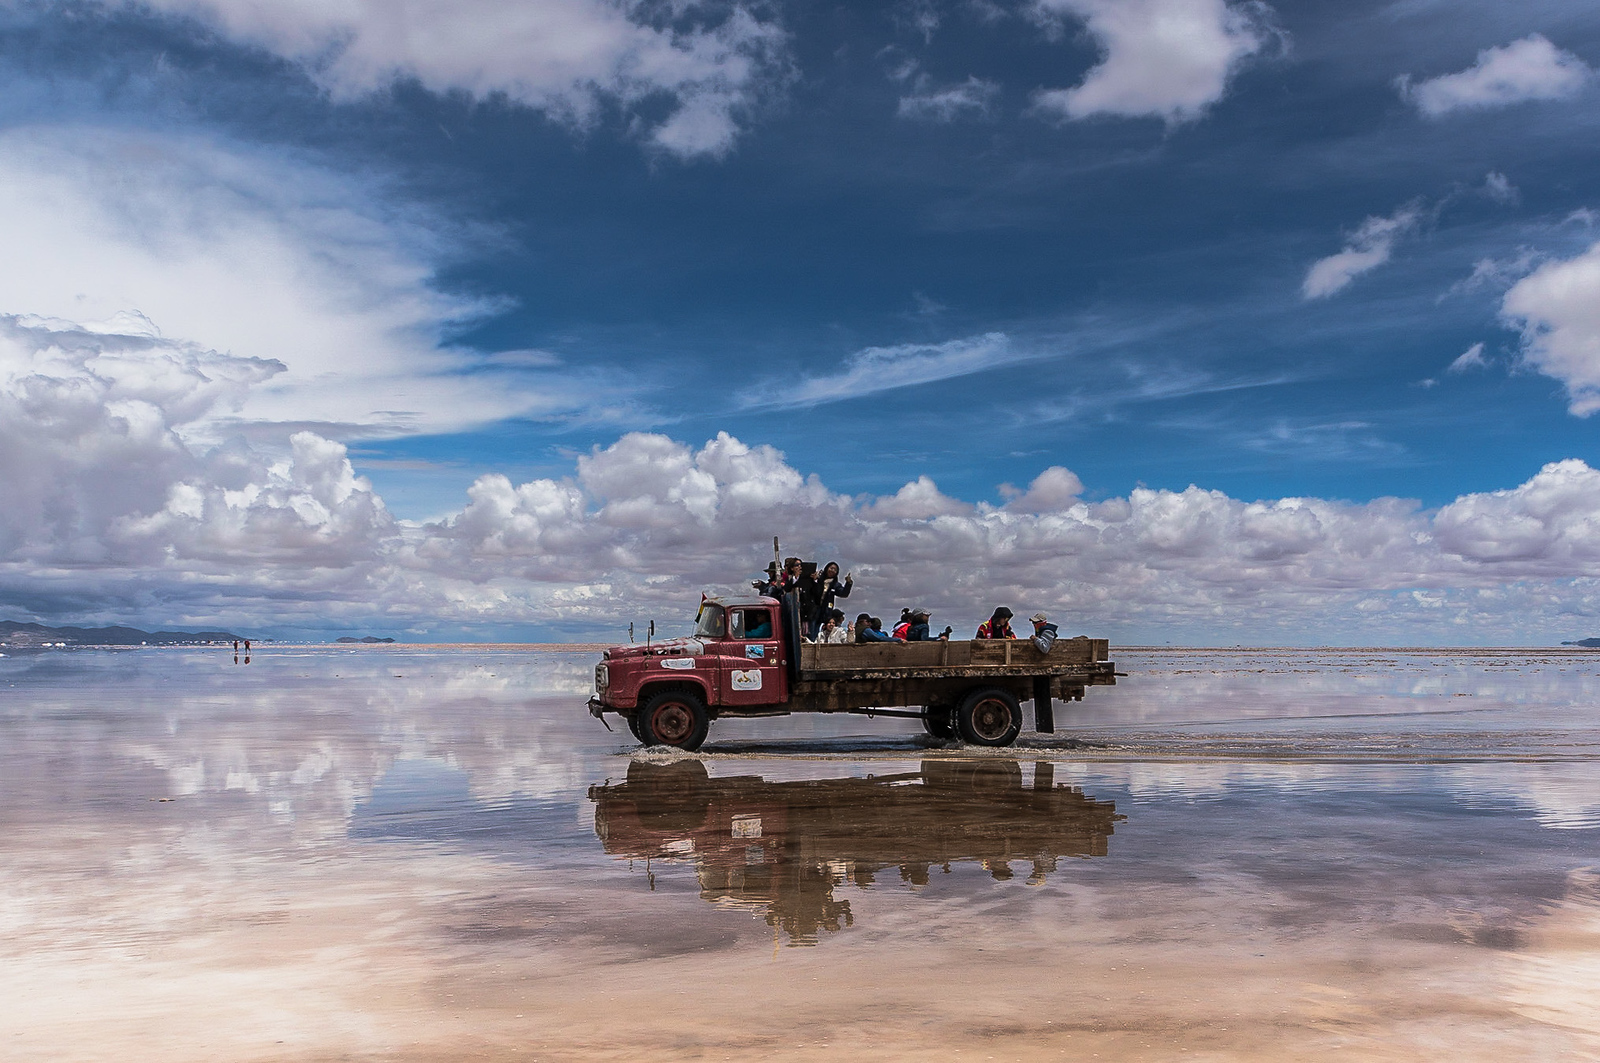 Driving on the Salar under water